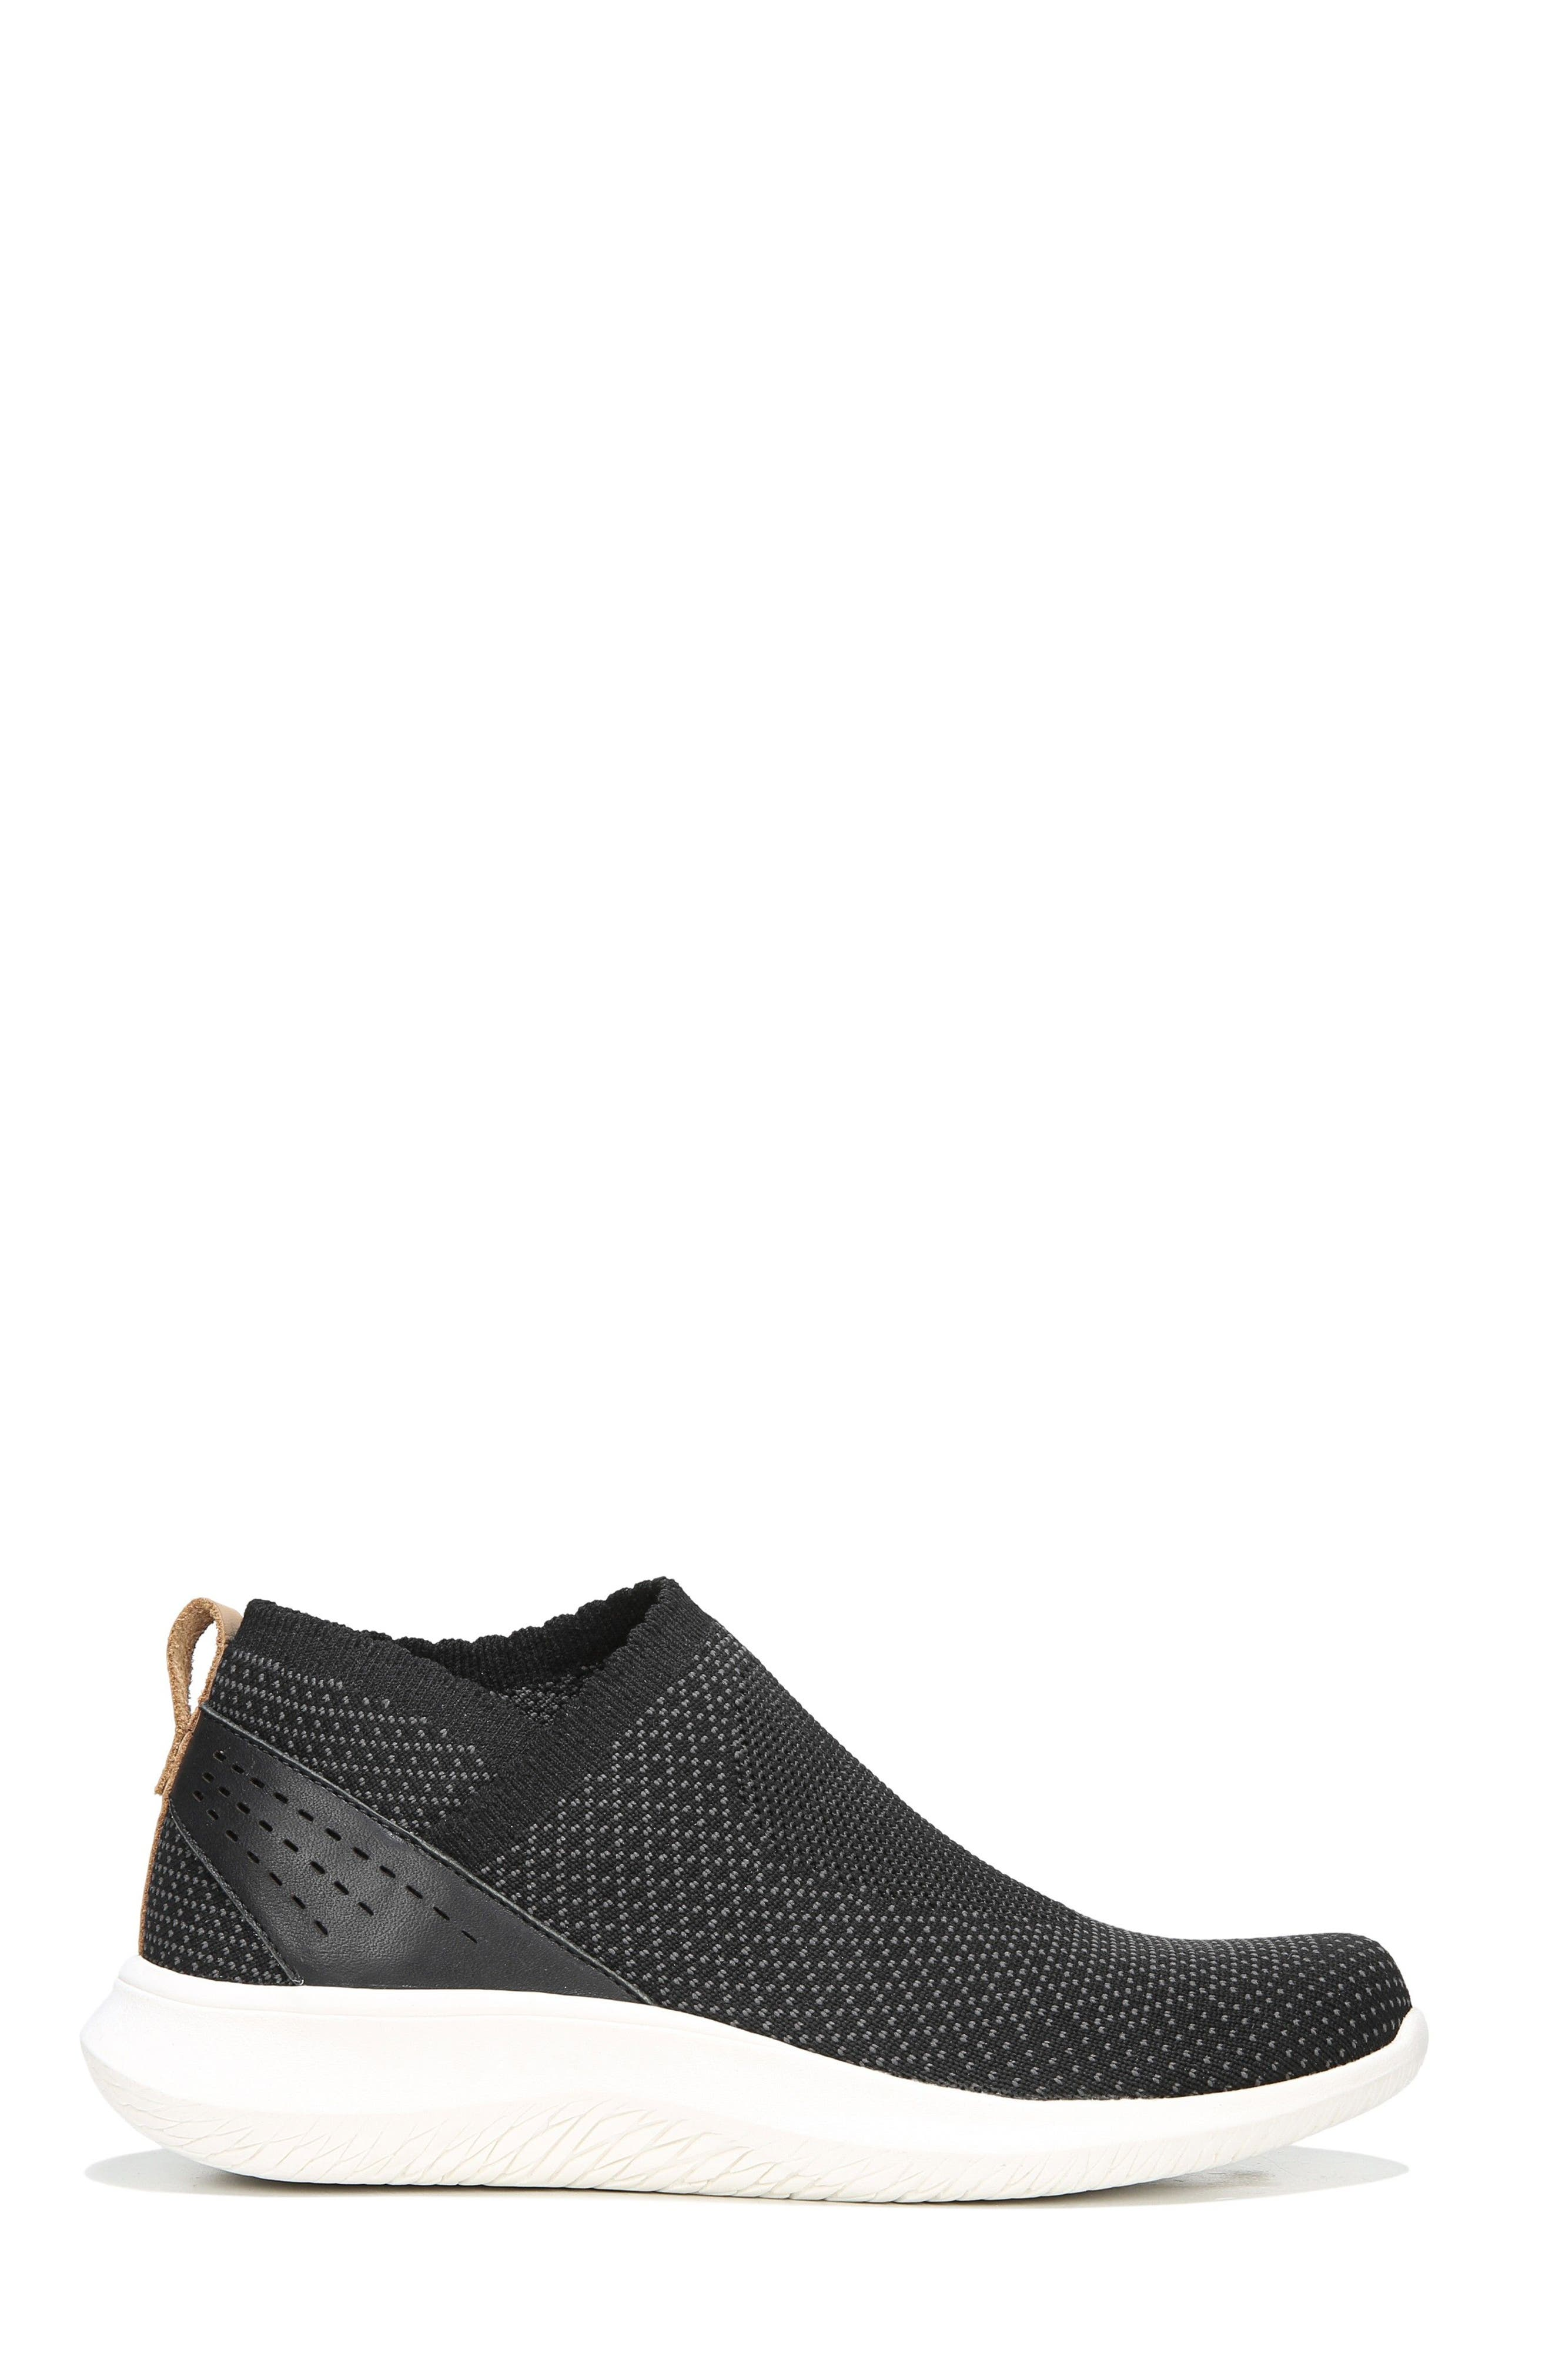 Fierce Knit Slip-On Sneaker,                             Alternate thumbnail 3, color,                             Black Knit Fabric